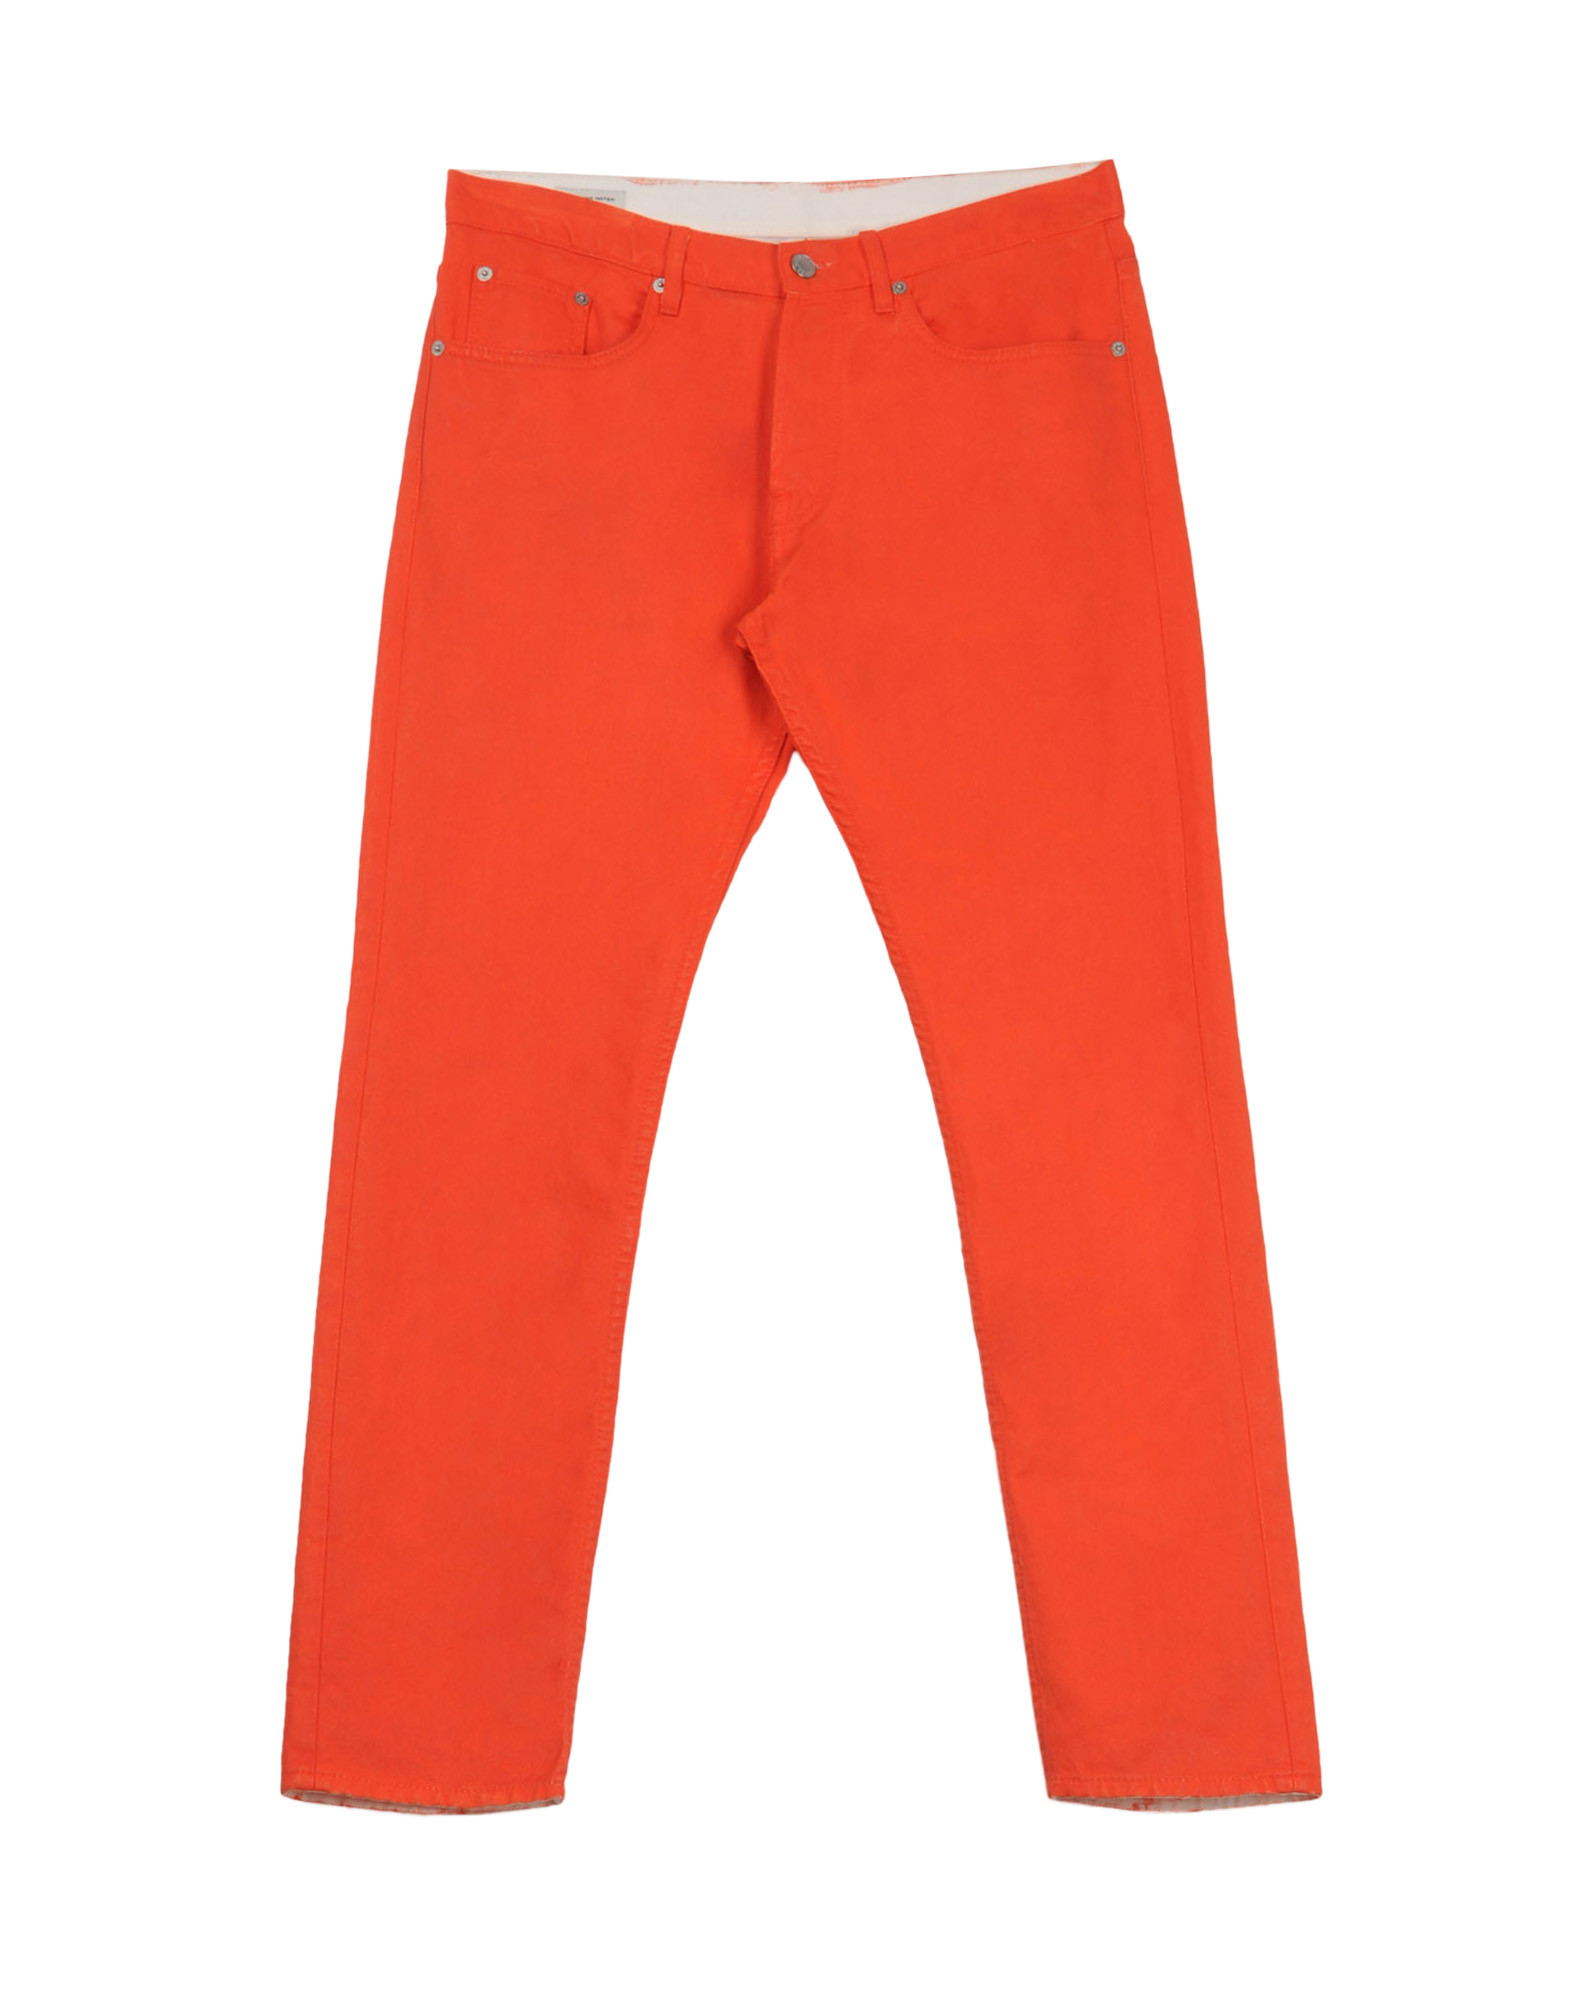 Dries Van Noten orange jeans